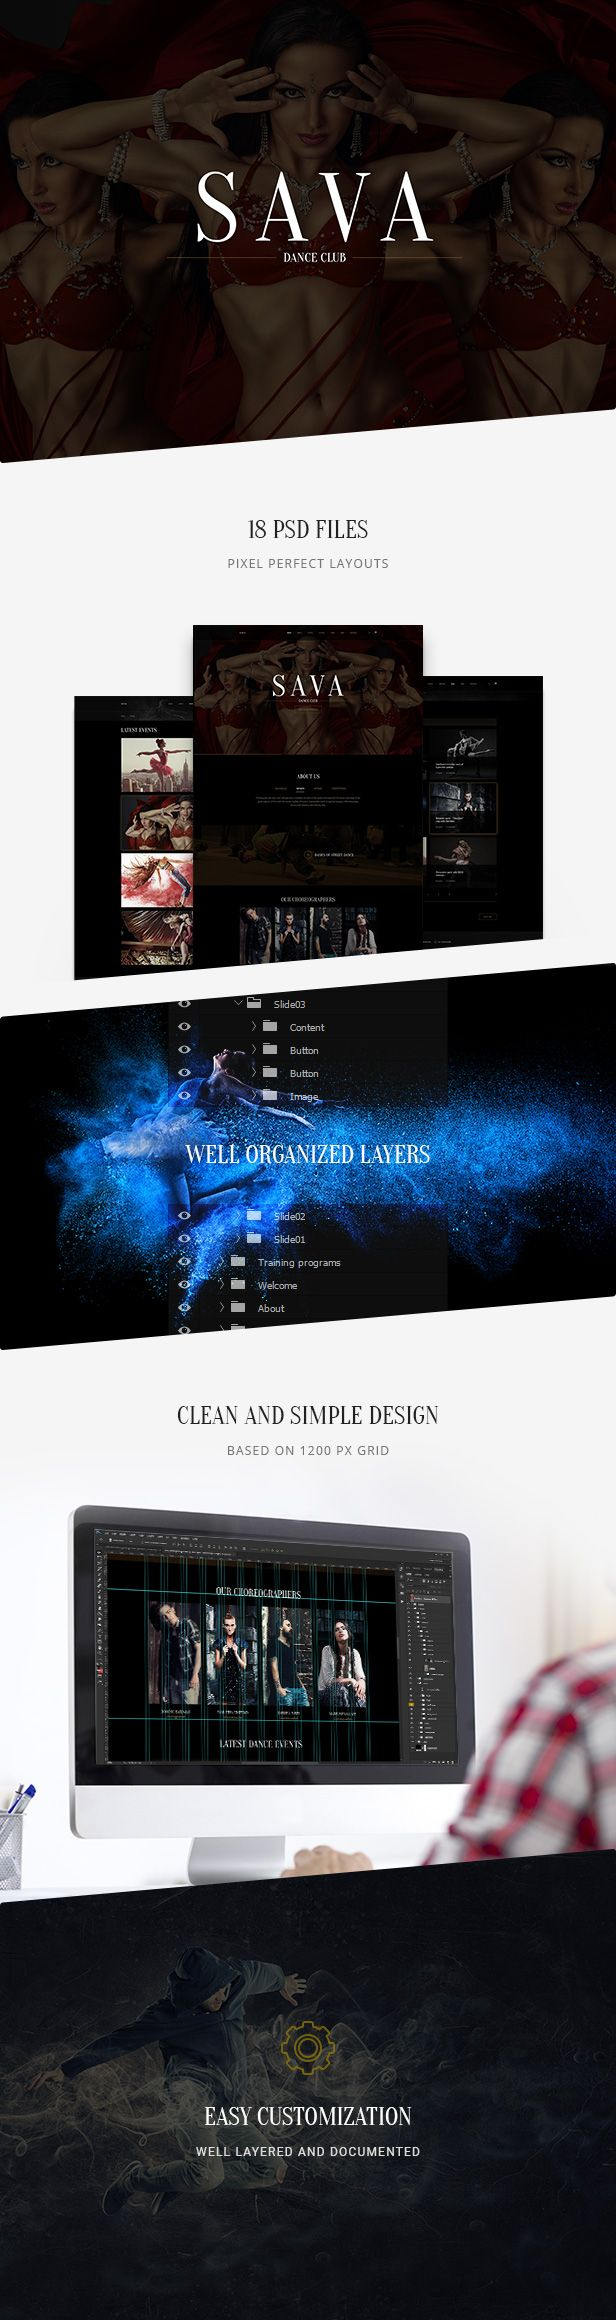 Sava – ultra modern, frank design in dark color for nightlife. Sava is awesome PSD Template for Night Club, Strip Club, Pole Dance Studio, Party Night, Photographer, Dance and Party Organisation, Lifestyle Blog